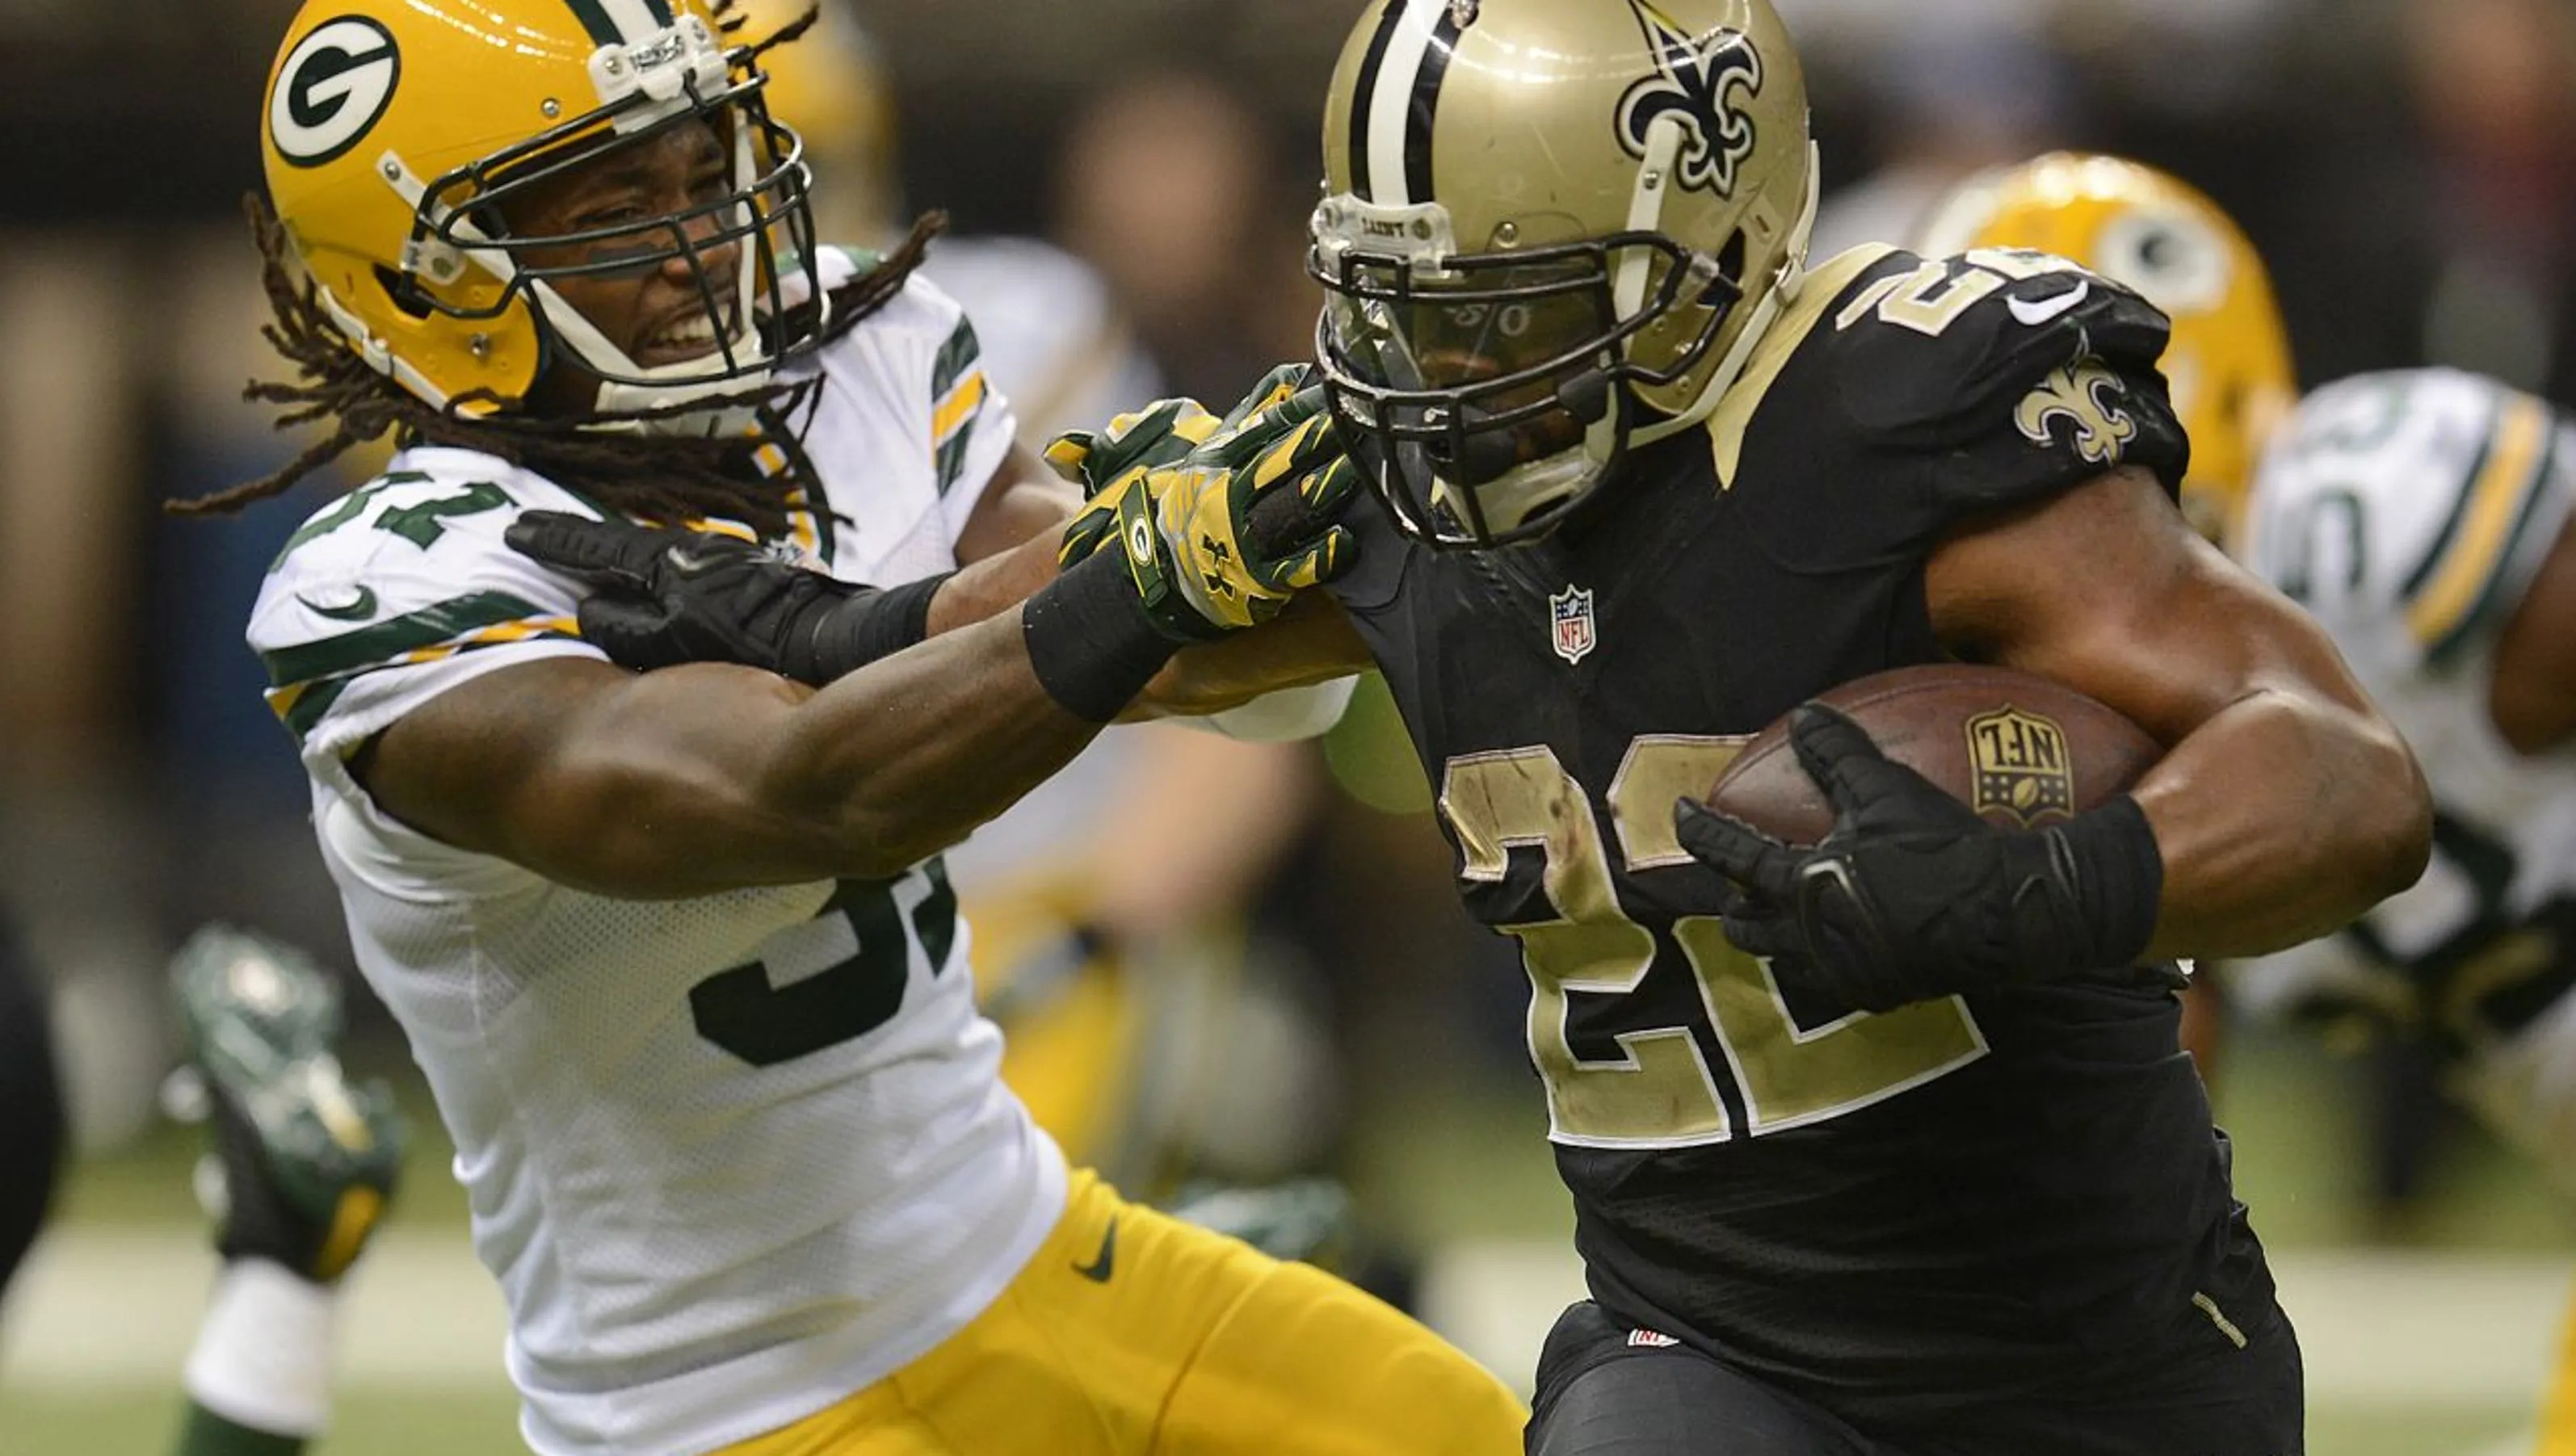 Mark Ingram of the New Orleans Saints and Devon House of the Green Bay Packers